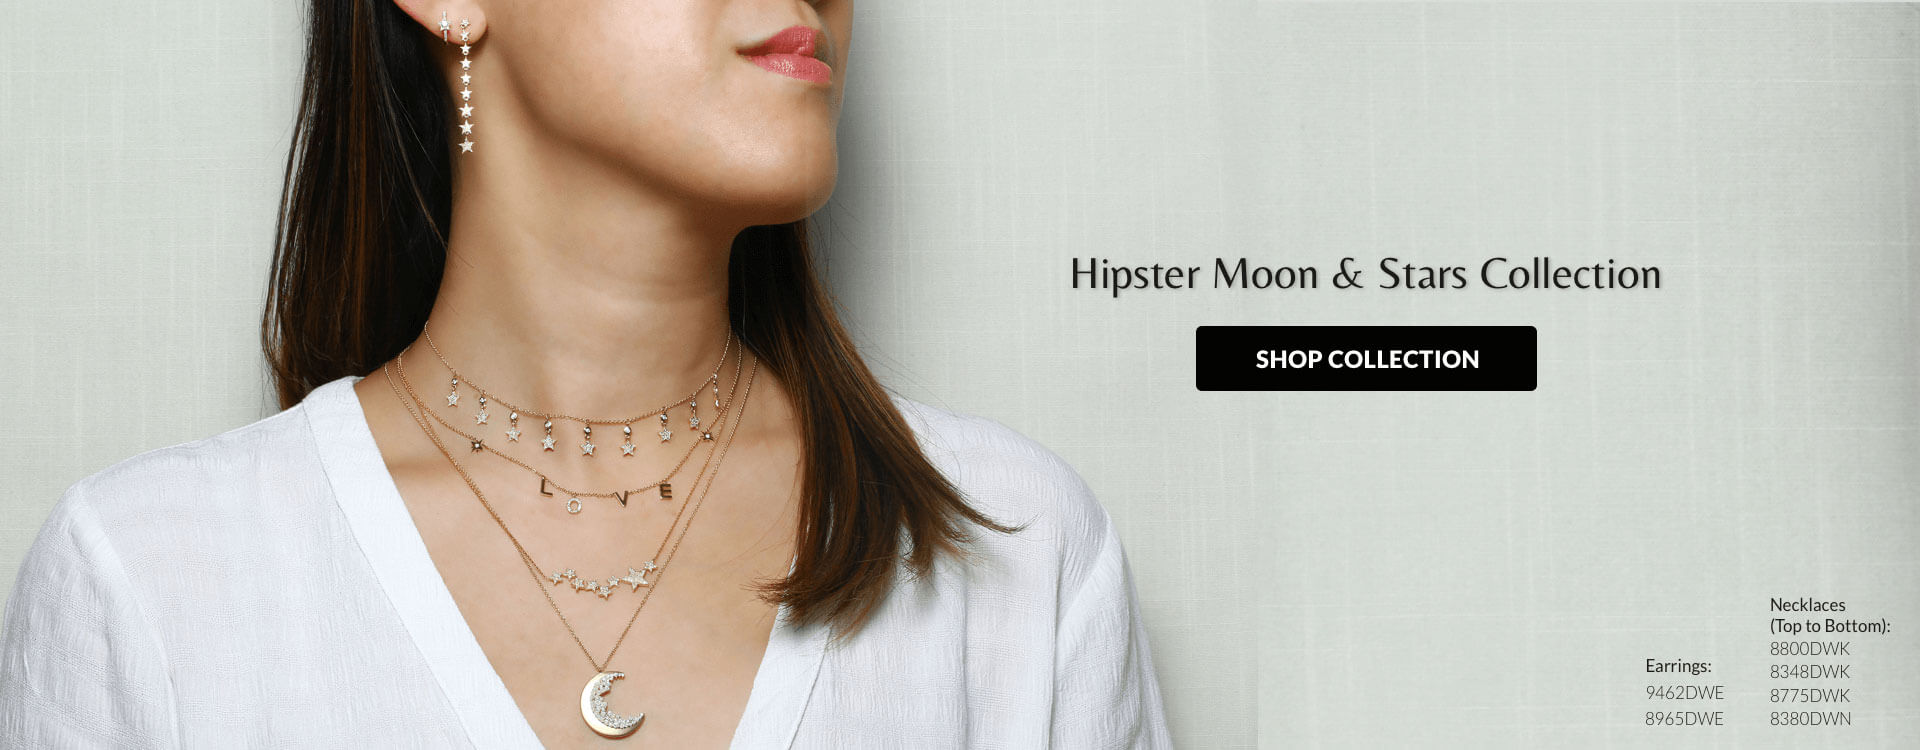 Hipster-Moon-Star